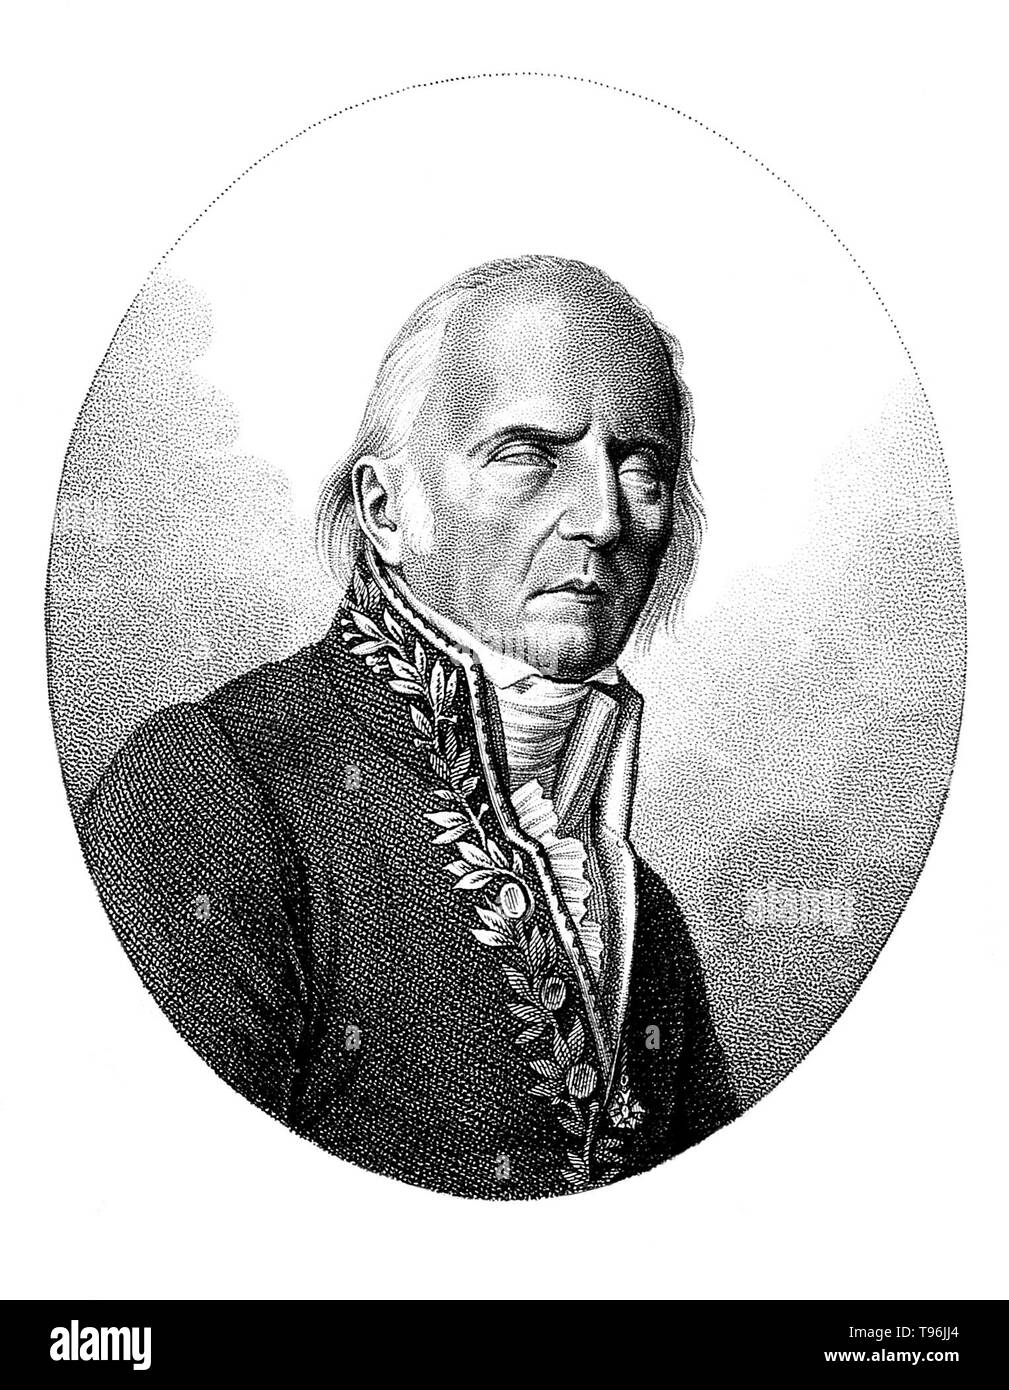 Jean-Baptiste Pierre Antoine de Monet, Chevalier de la Marck (August 1, 1744-December 18, 1829), often known simply as Lamarck, was a French naturalist. He was a soldier, biologist, academic, and an early proponent of the idea that evolution occurred and proceeded in accordance with natural laws. His theory of evolution was based on the idea that acquired characteristics are inherited. After 1800 he put forward general ideas on plant and animal species, which he believed were not ''fixed''. He proposed that in nature it is the environment that produces change; the length of the giraffe's neck, - Stock Image